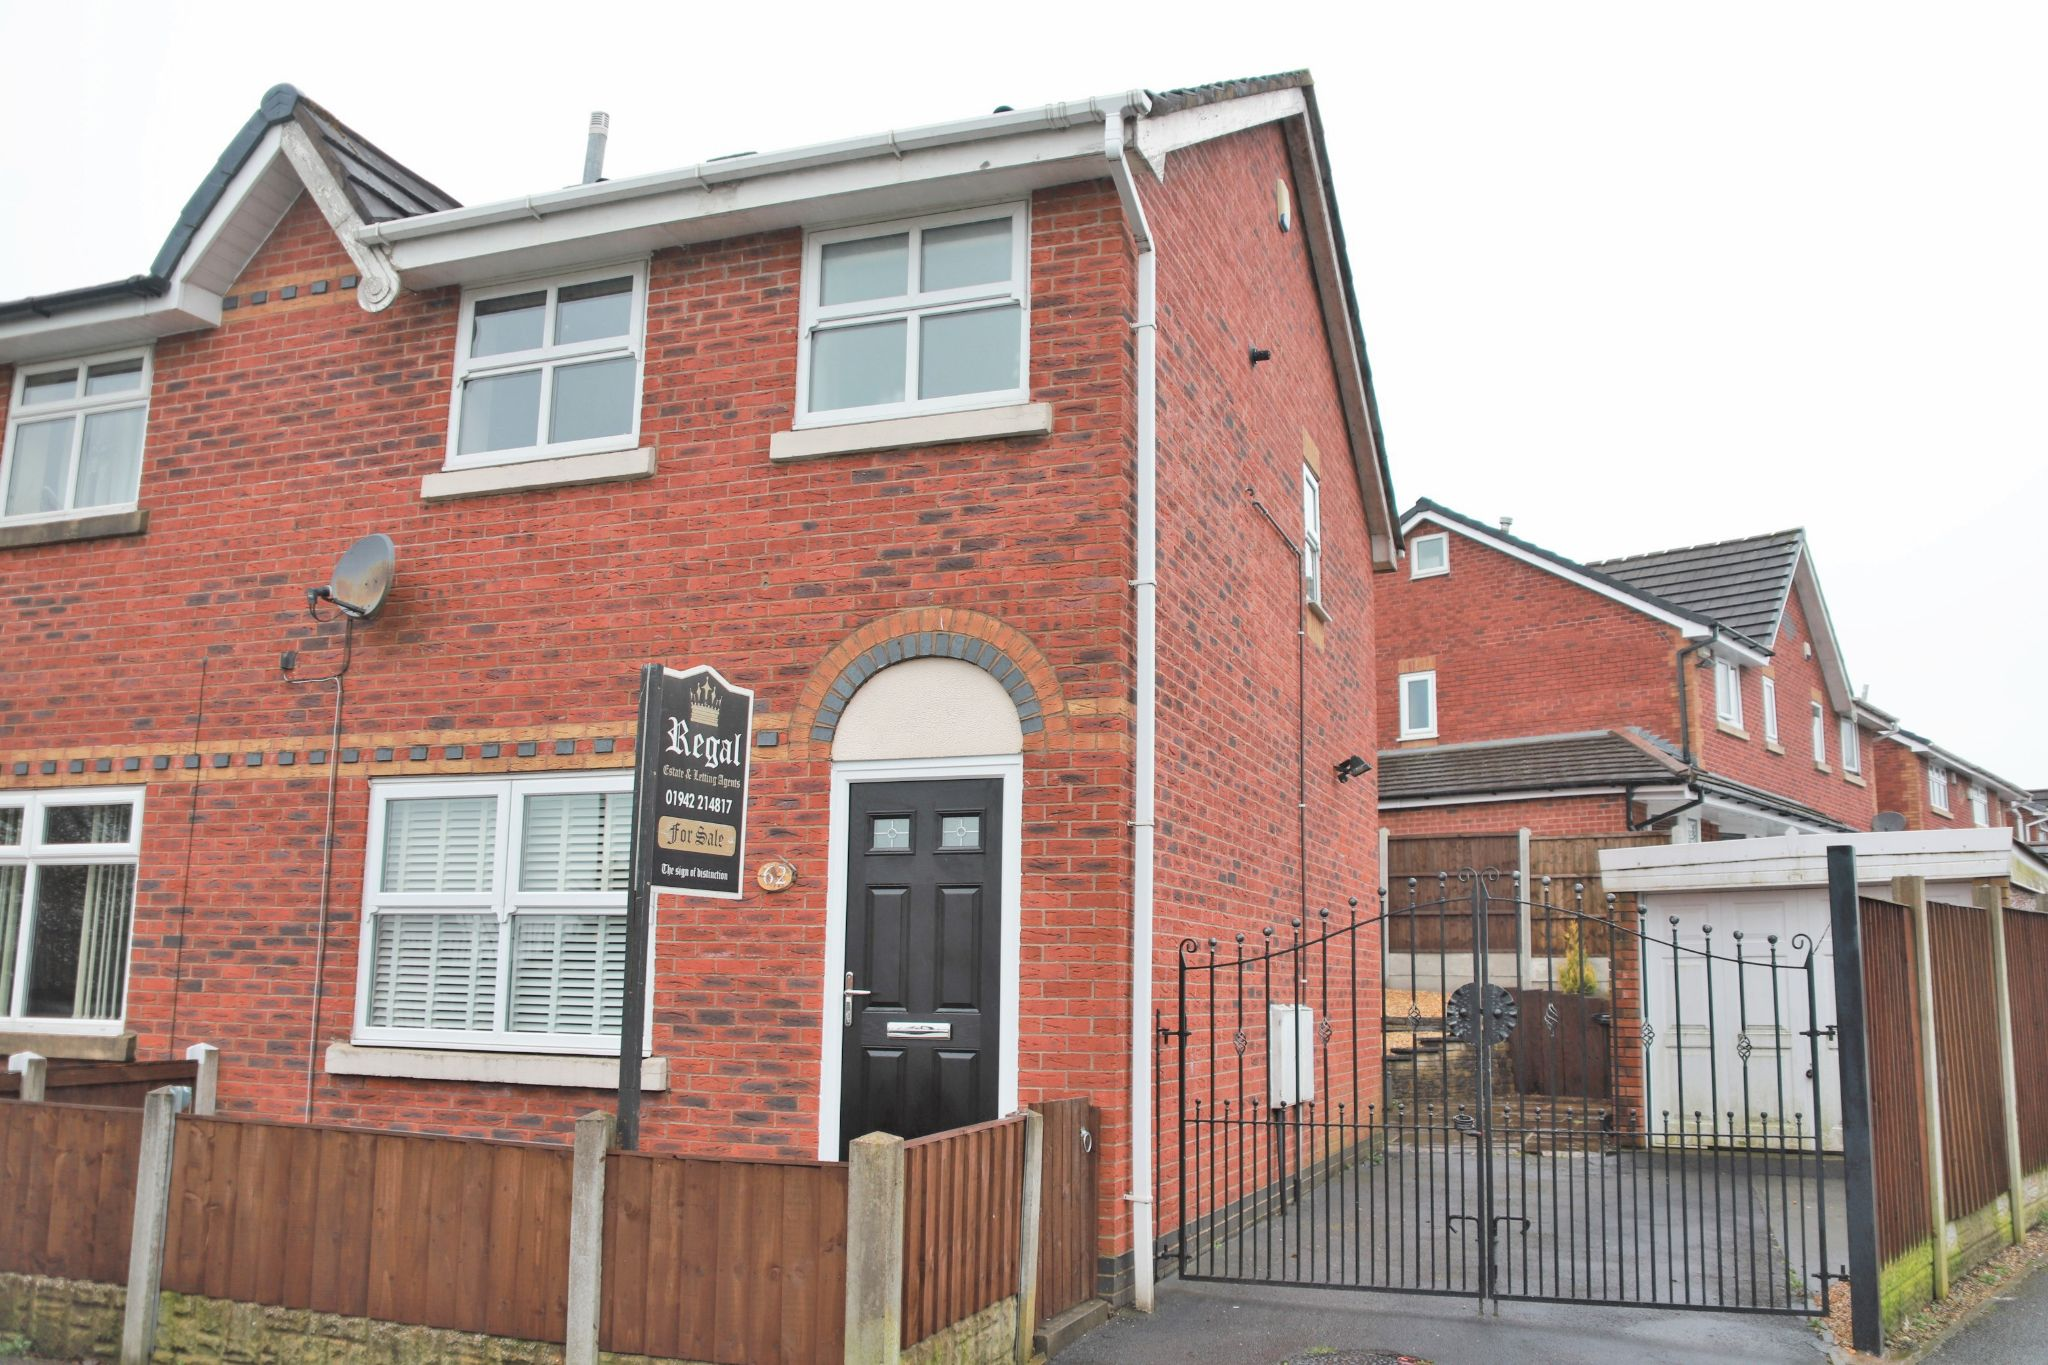 3 bedroom semi-detached house For Sale in Wigan - Photograph 1.